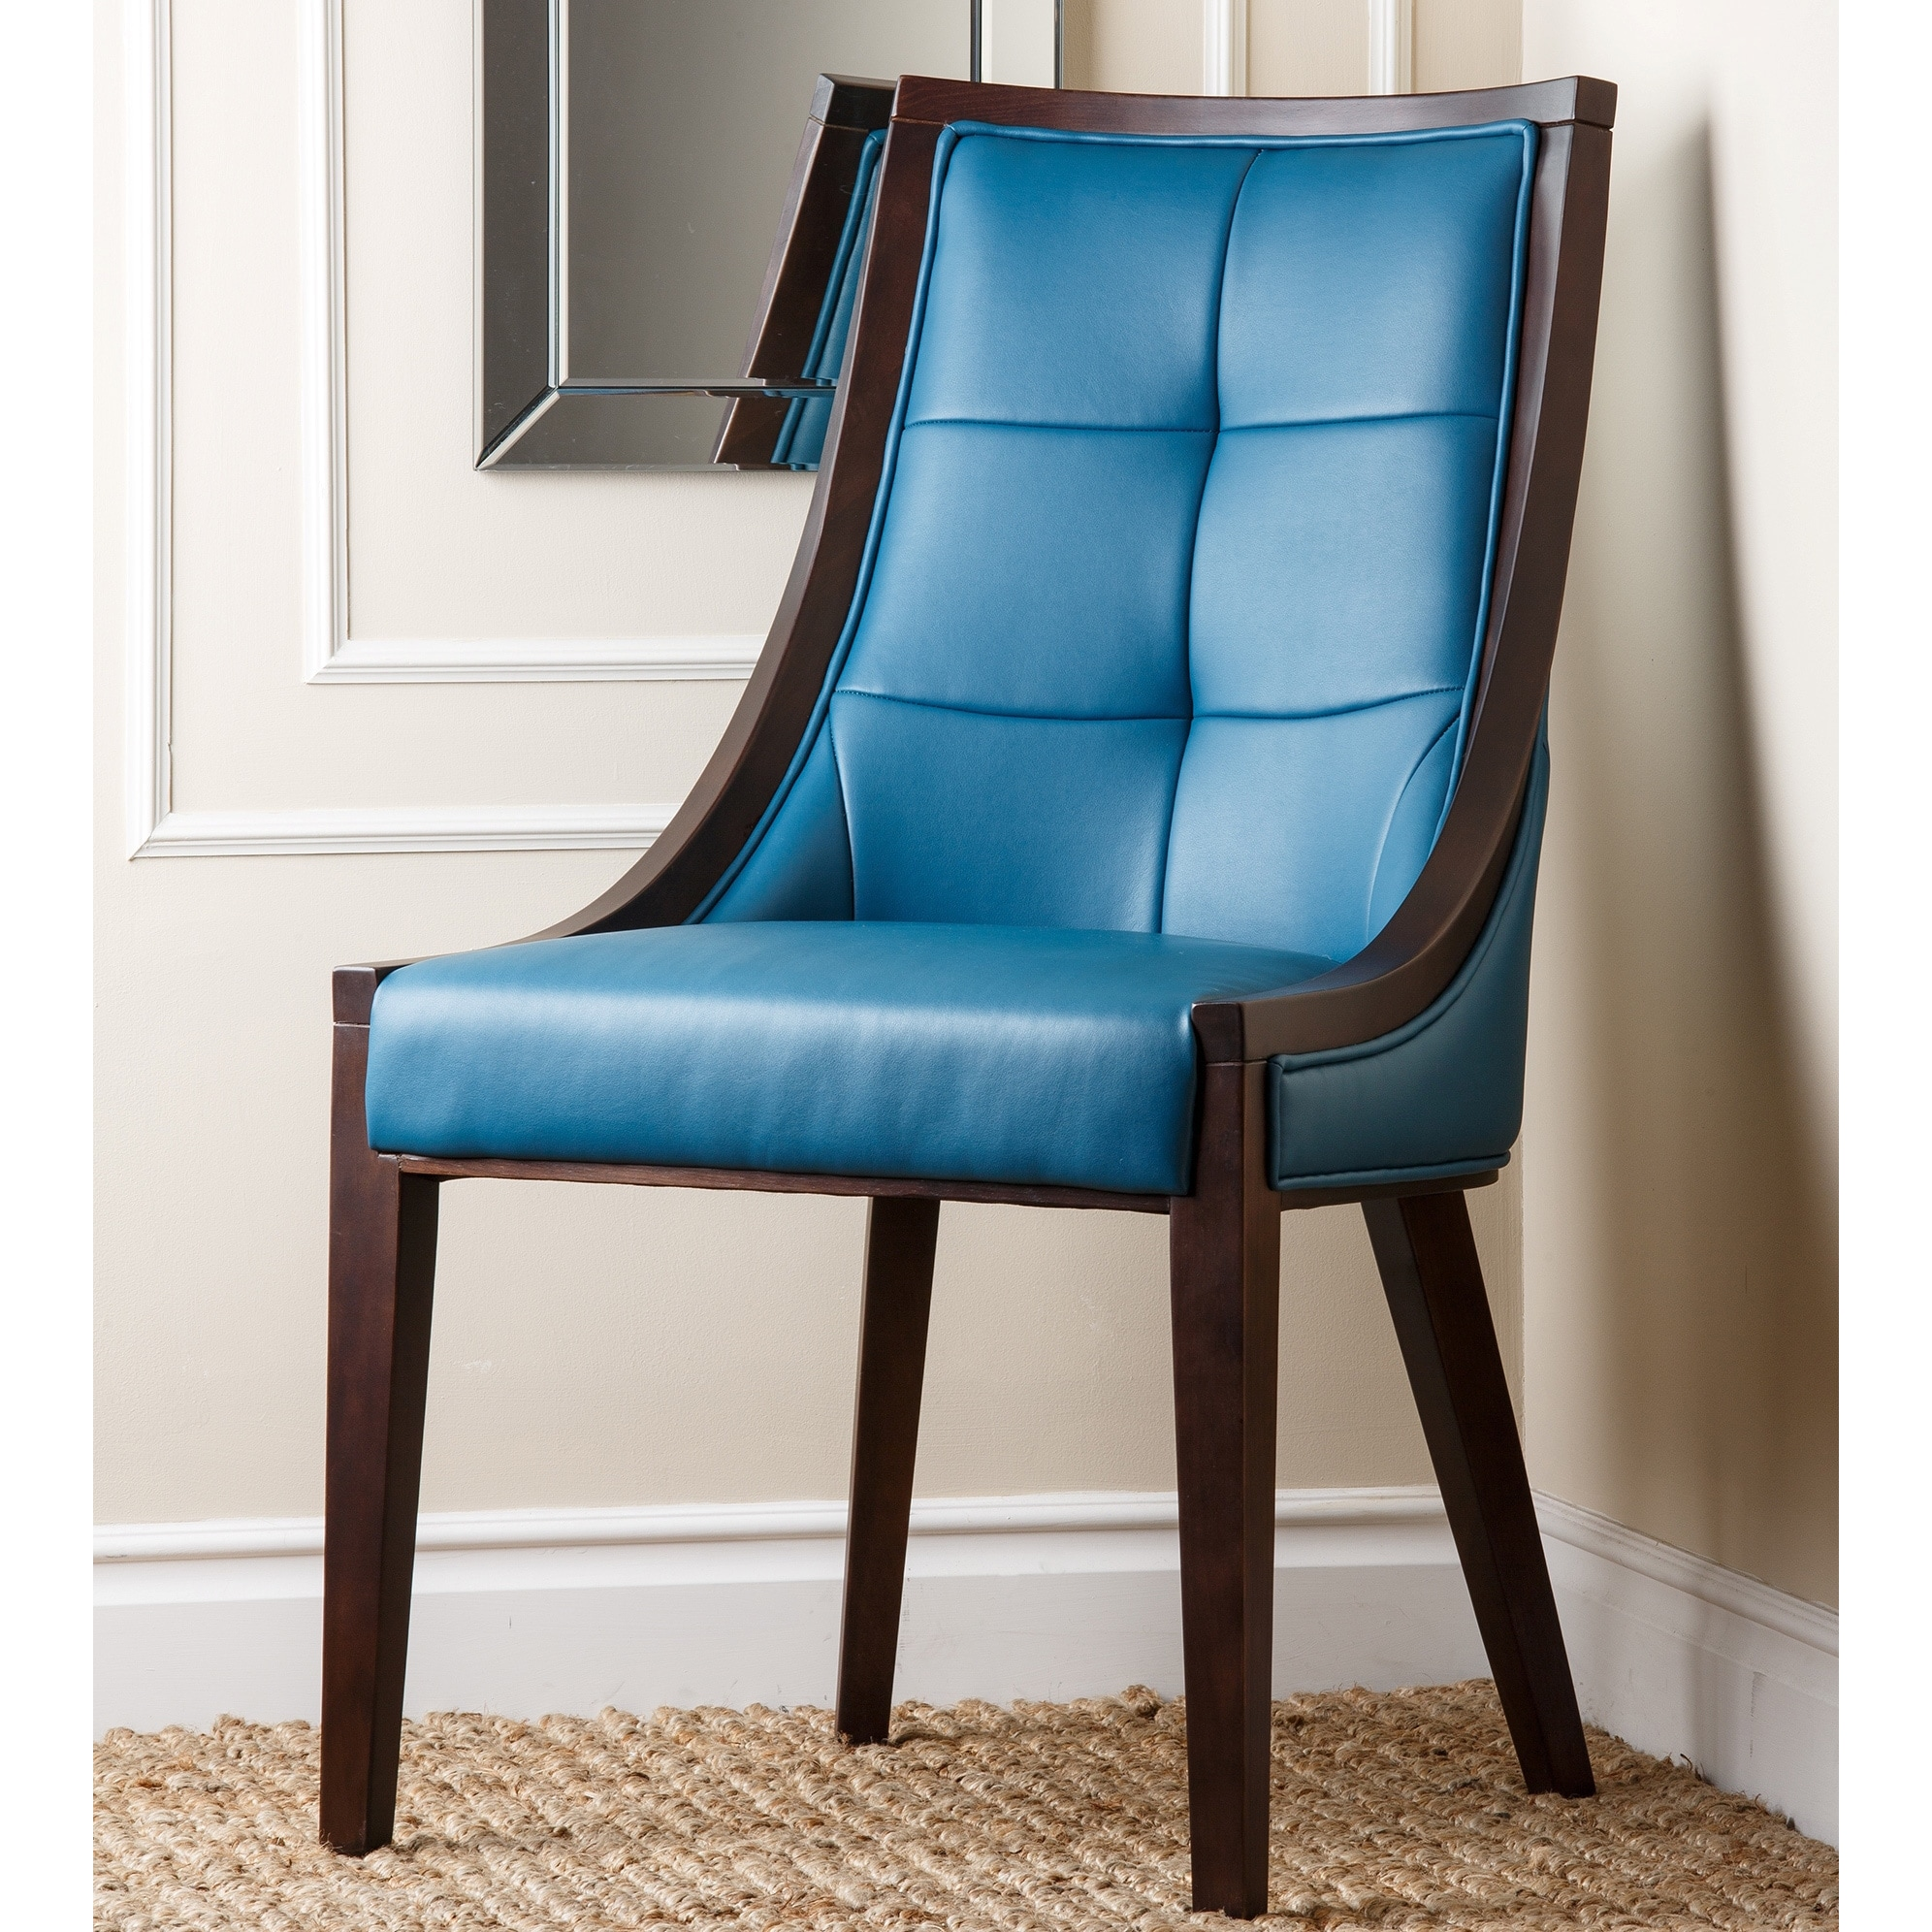 Orlando Turquoise Bonded Leather Dining Chair Free Shipping Today 8749938